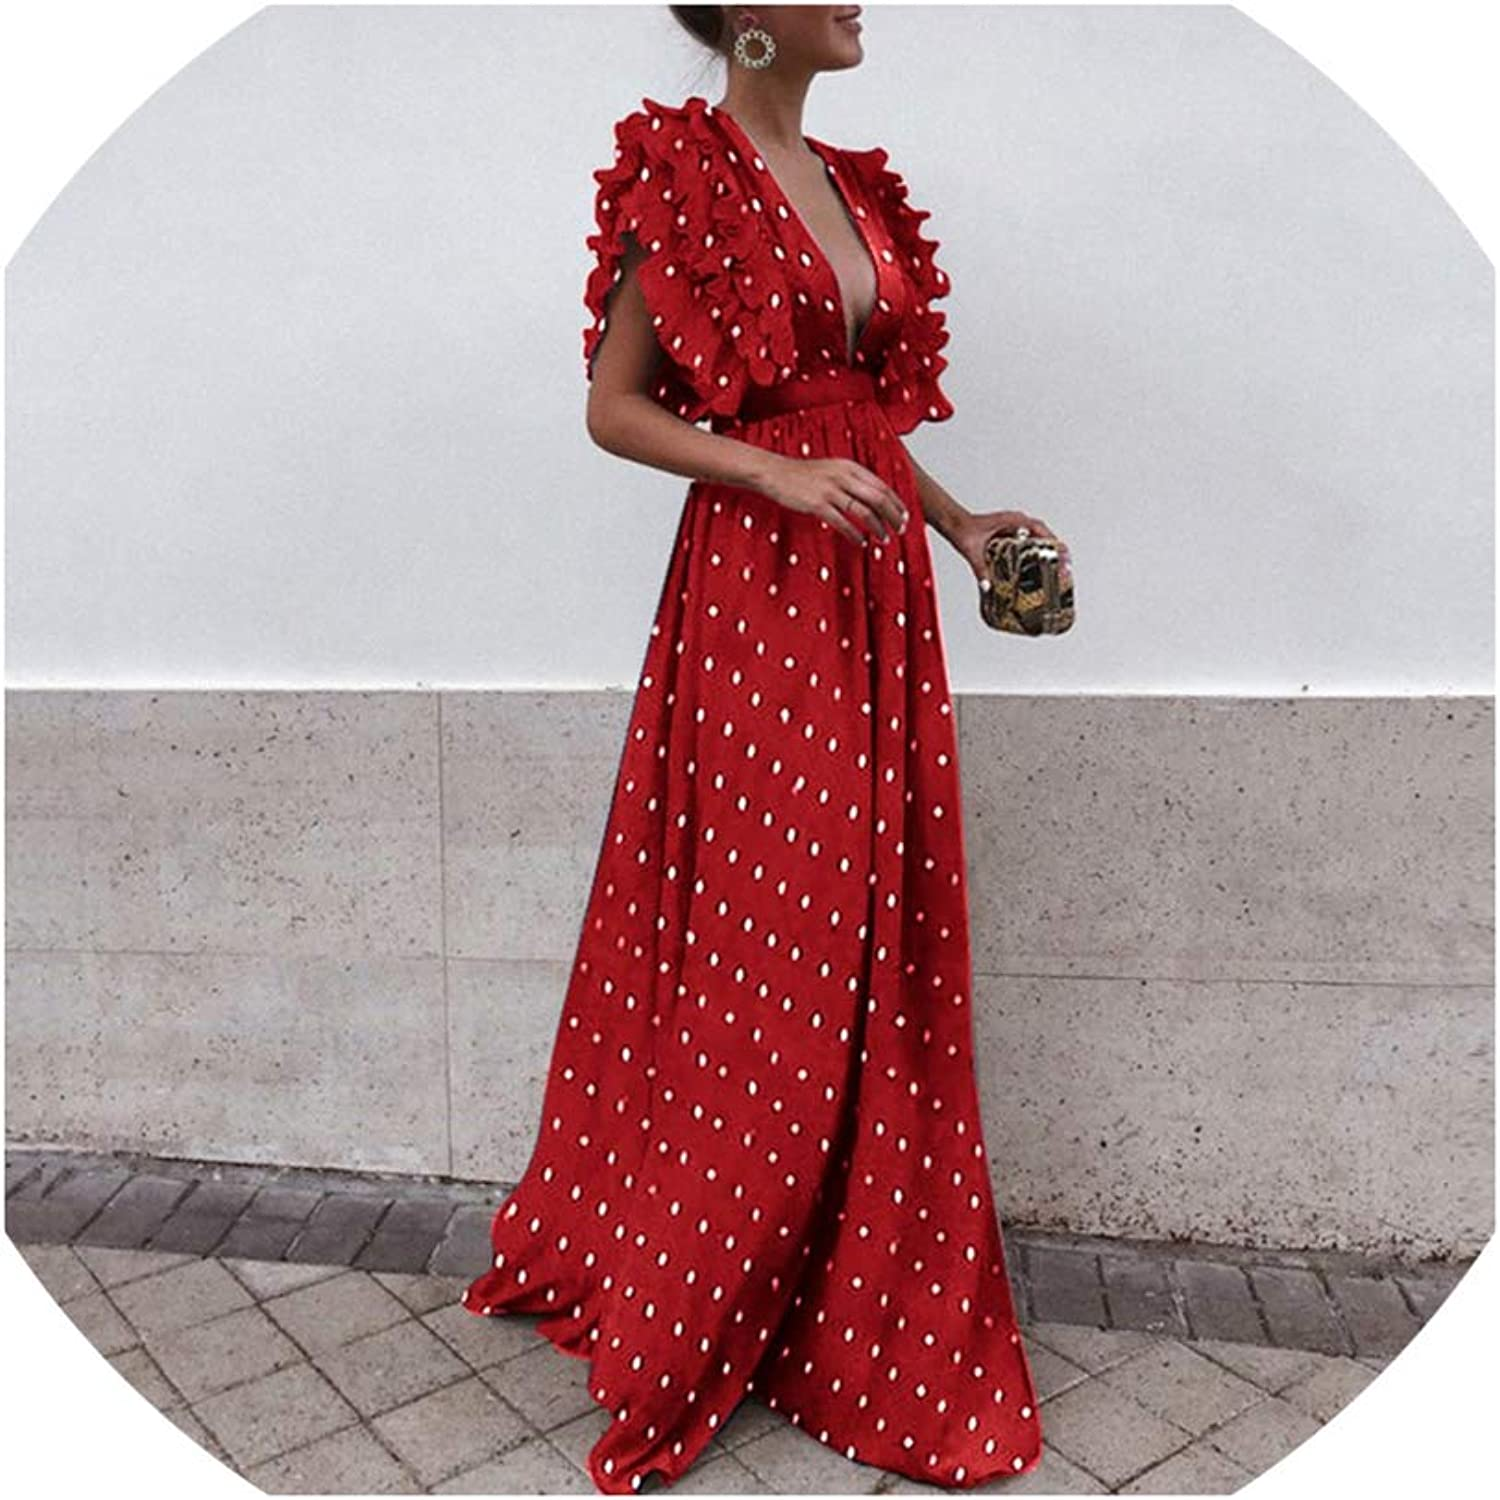 Polka Dots Shirt Bohemian Dresses Butterfly Sleeve Ruffles Plus Size Boho Maxi Dress